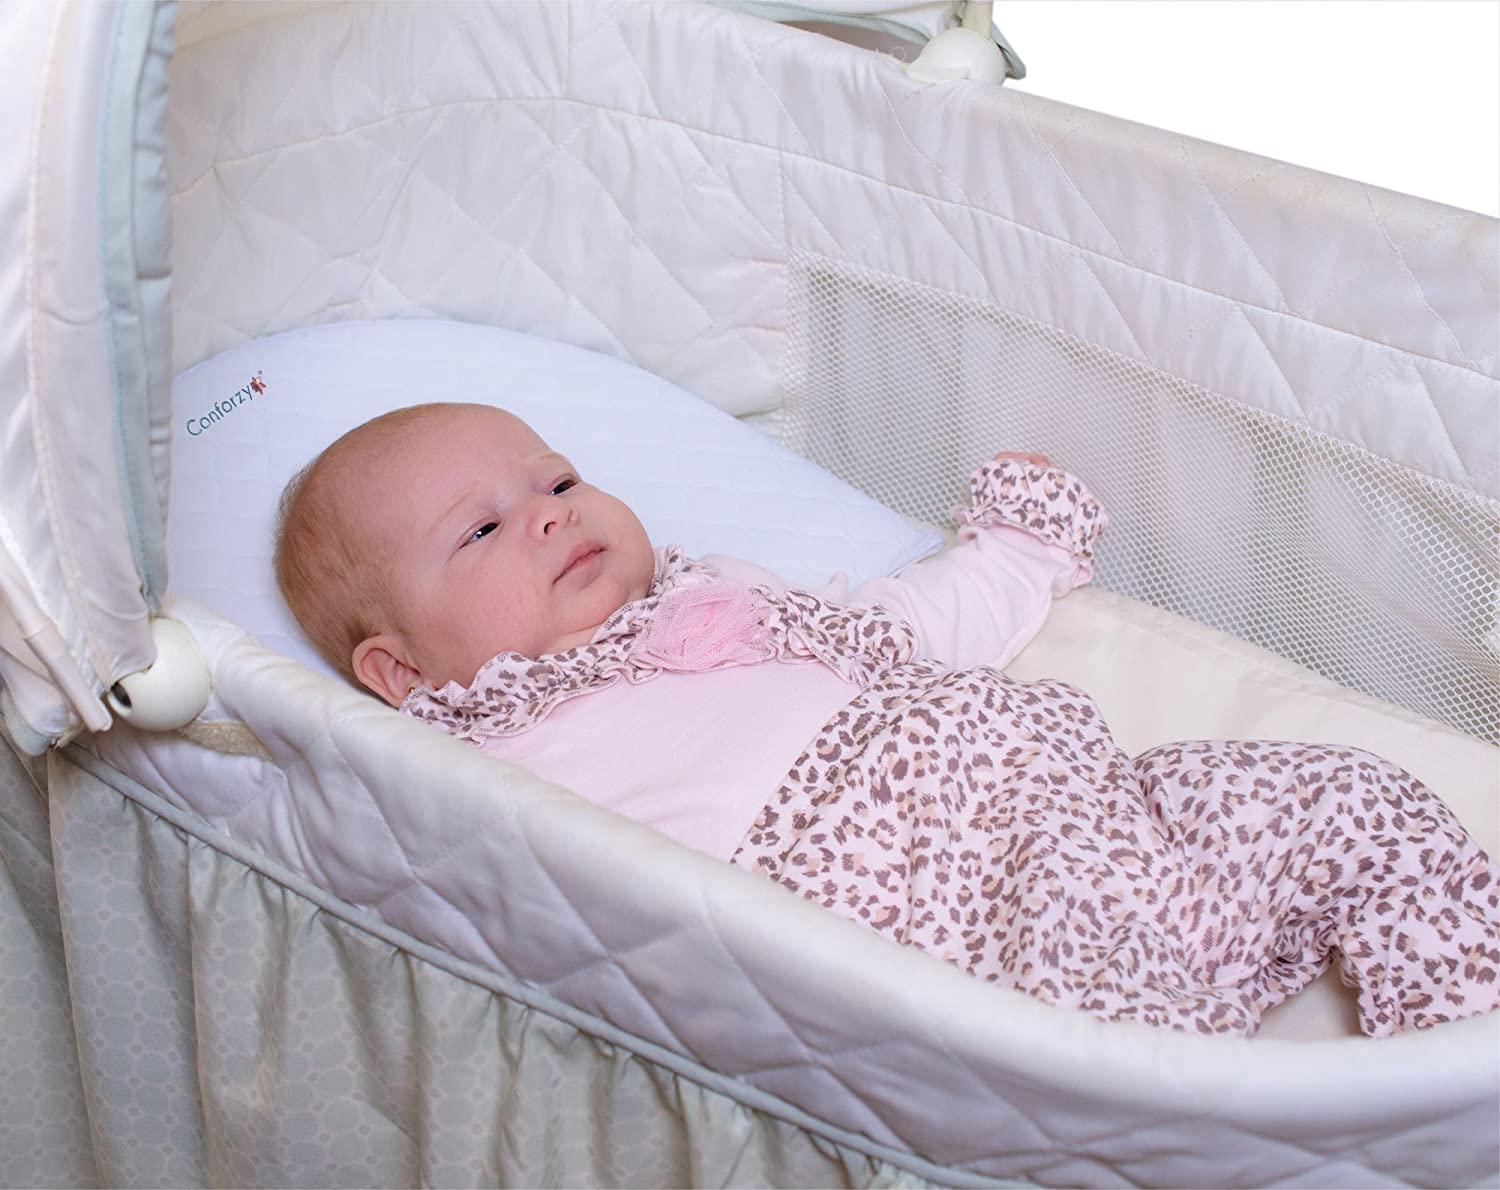 Baby bed for reflux -  Universal Bassinet Wedge 13 77 X 12 20 X 2 55 The Only Bassinet Wedge On The Market That Meets All The Consumer Product Safety Requirements Baby